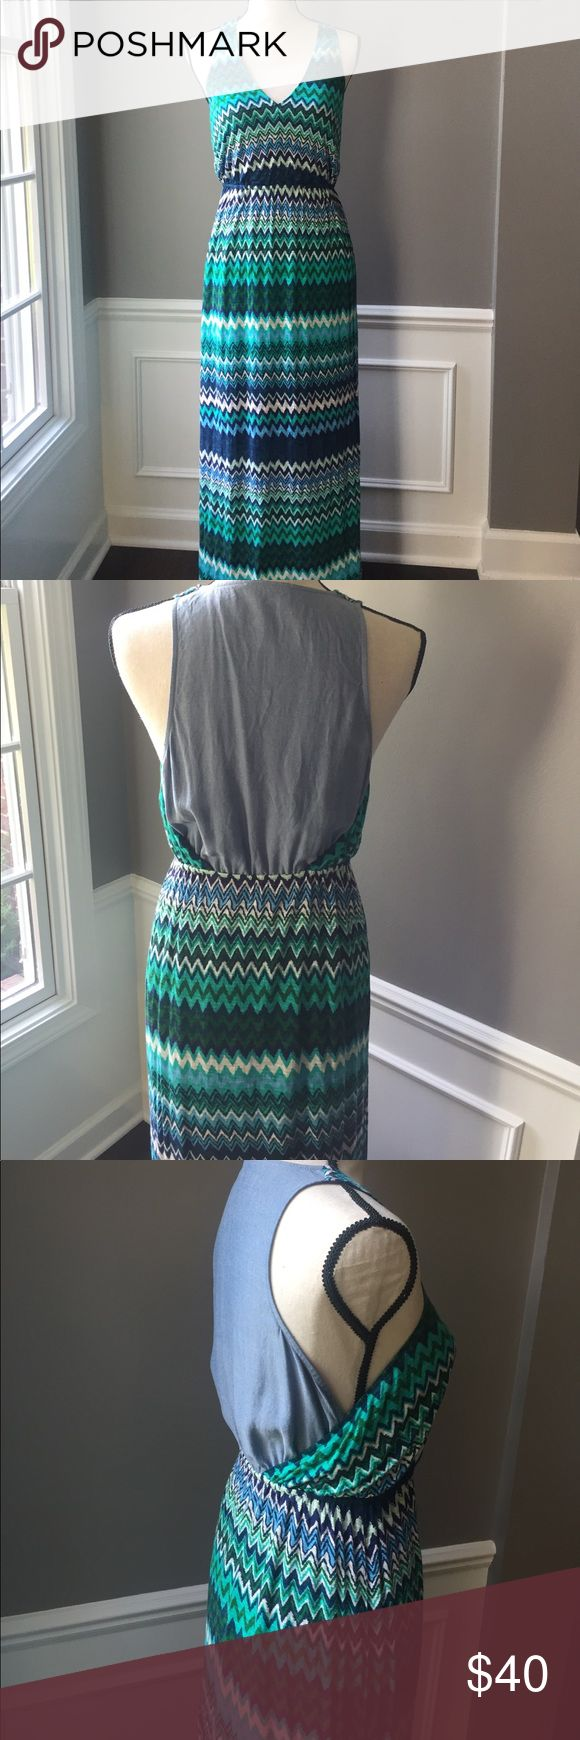 Anthropologie green and blue chevron maxi dress The Addison story maxi dress from Anthropologie. Size medium, dry clean only. Wore only once, had it hemmed as it was a little long on me. Length now measures at approximately 54 inches. Partially lined. Back has a light chambray material. Really cute!!! Anthropologie Dresses Maxi